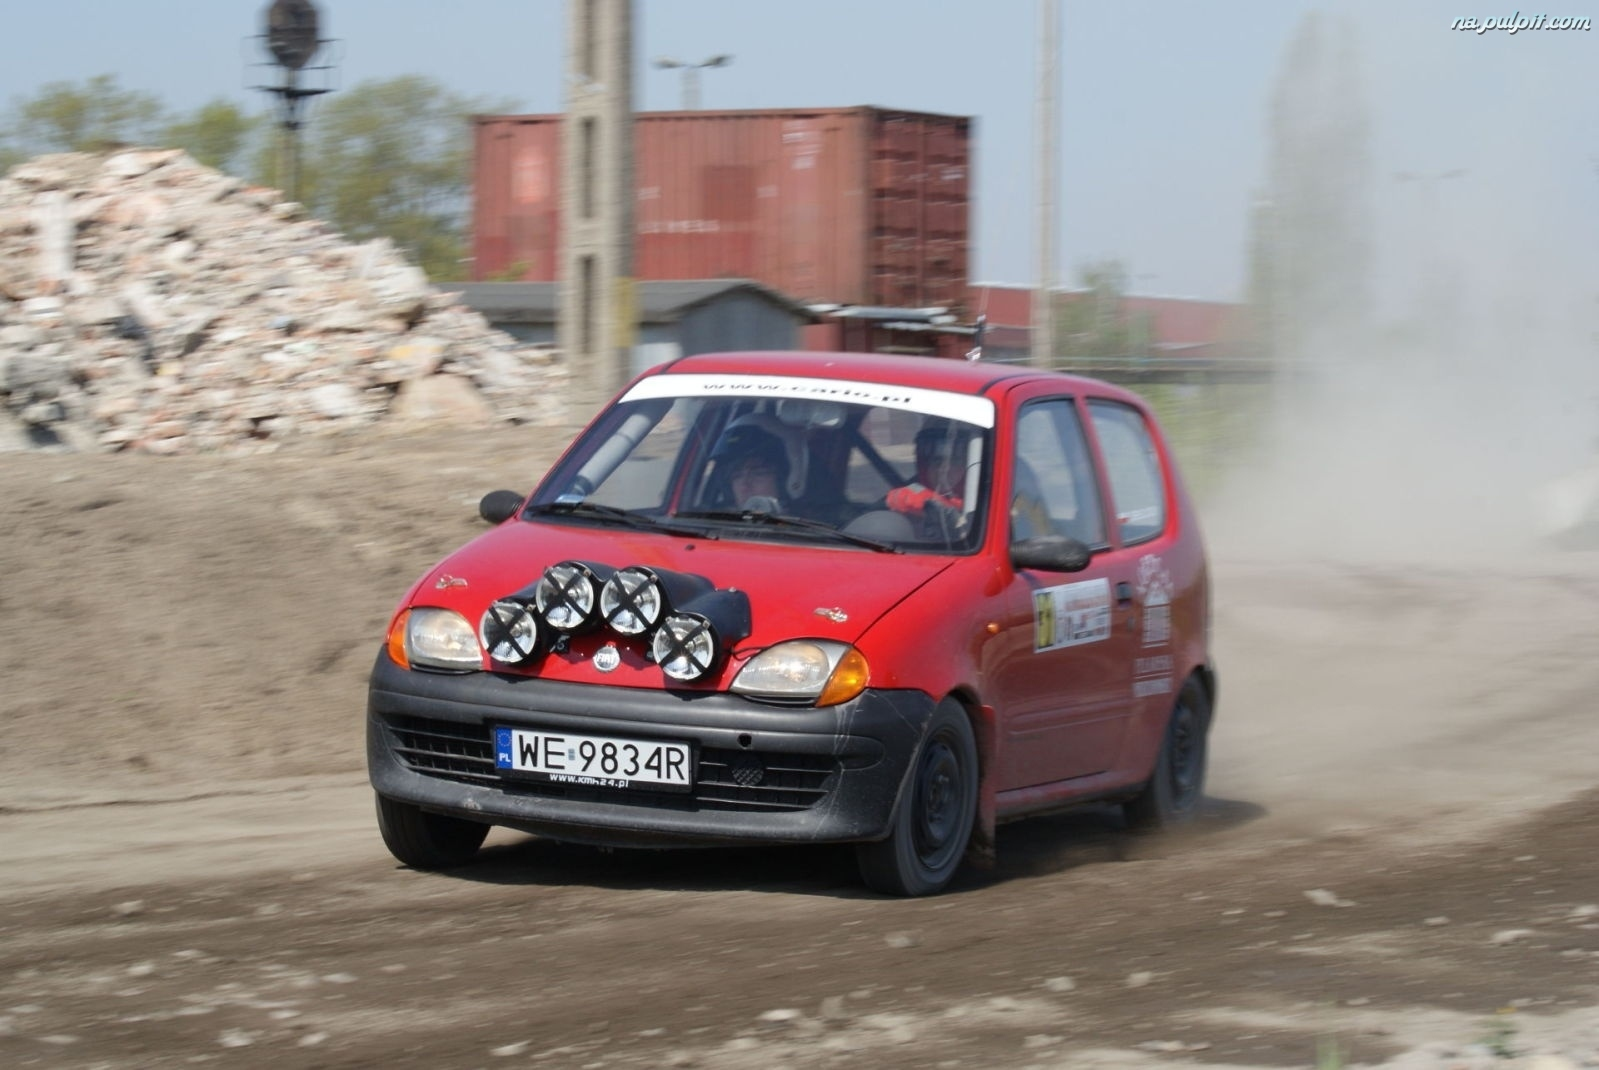 fiat seicento wallpaper - photo #16